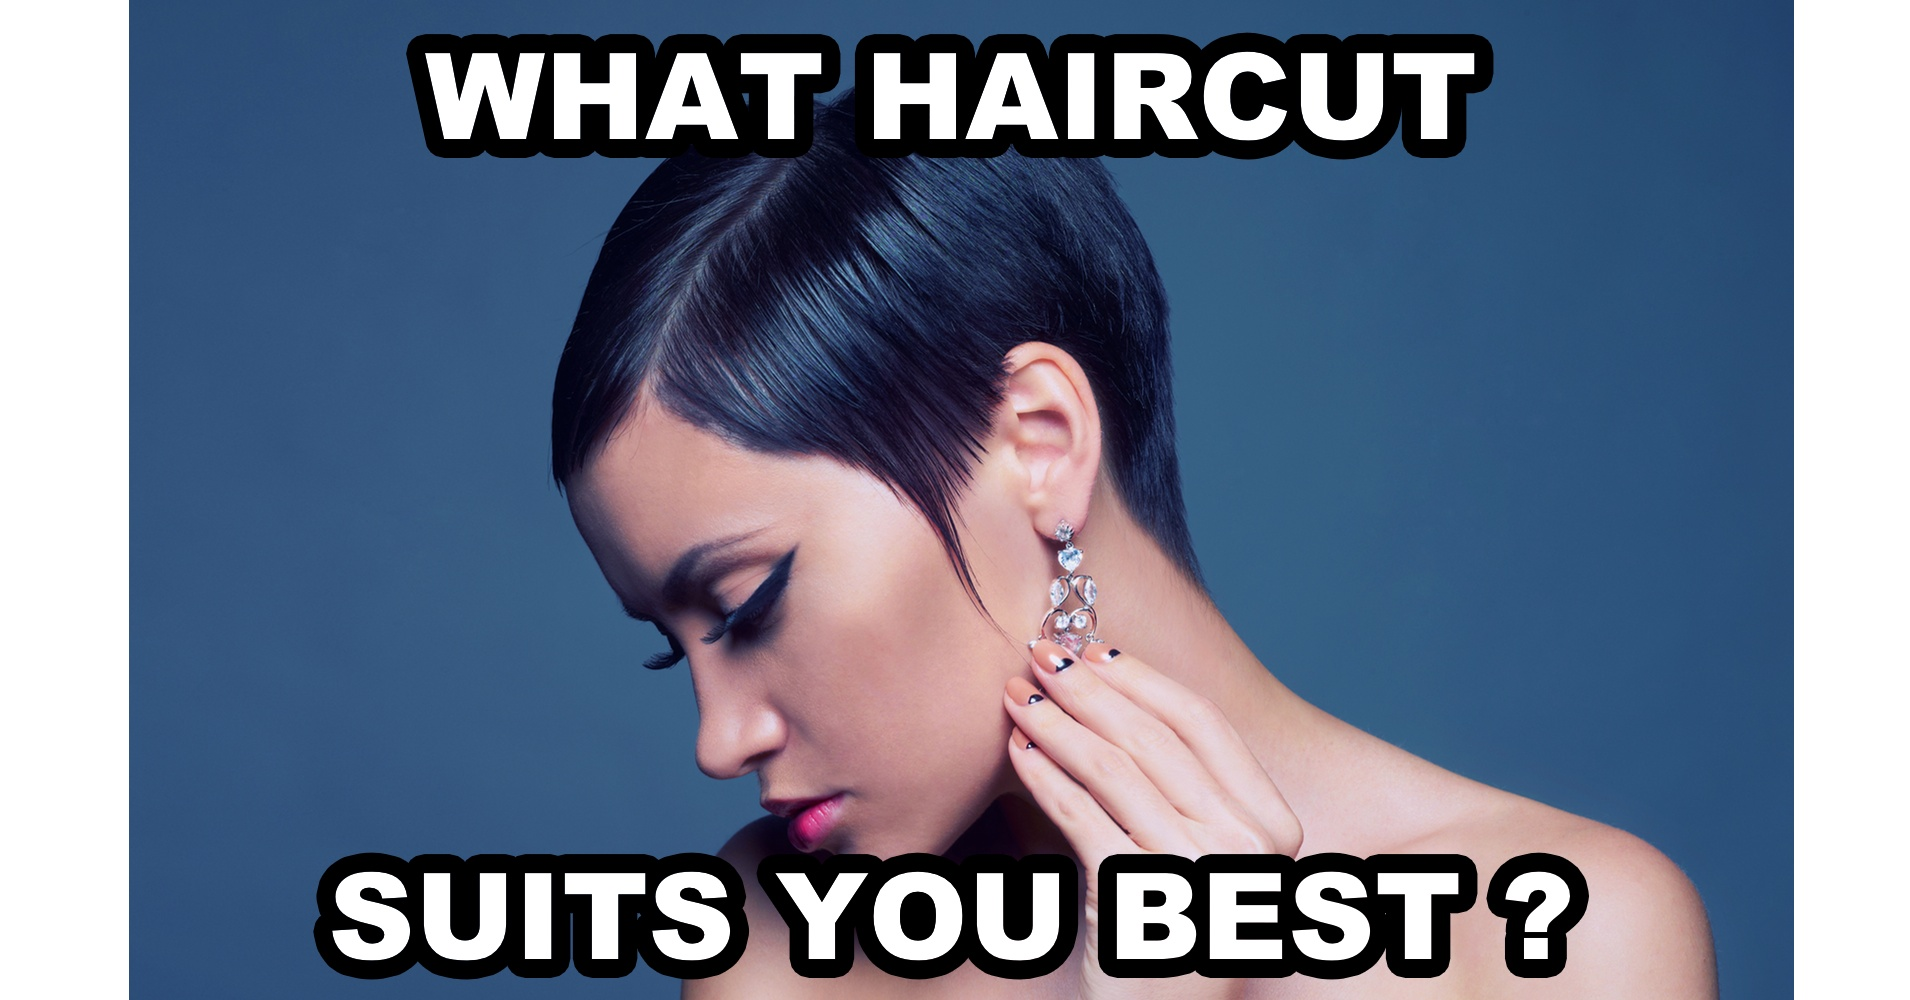 what haircut suits you best? - quiz - quizony